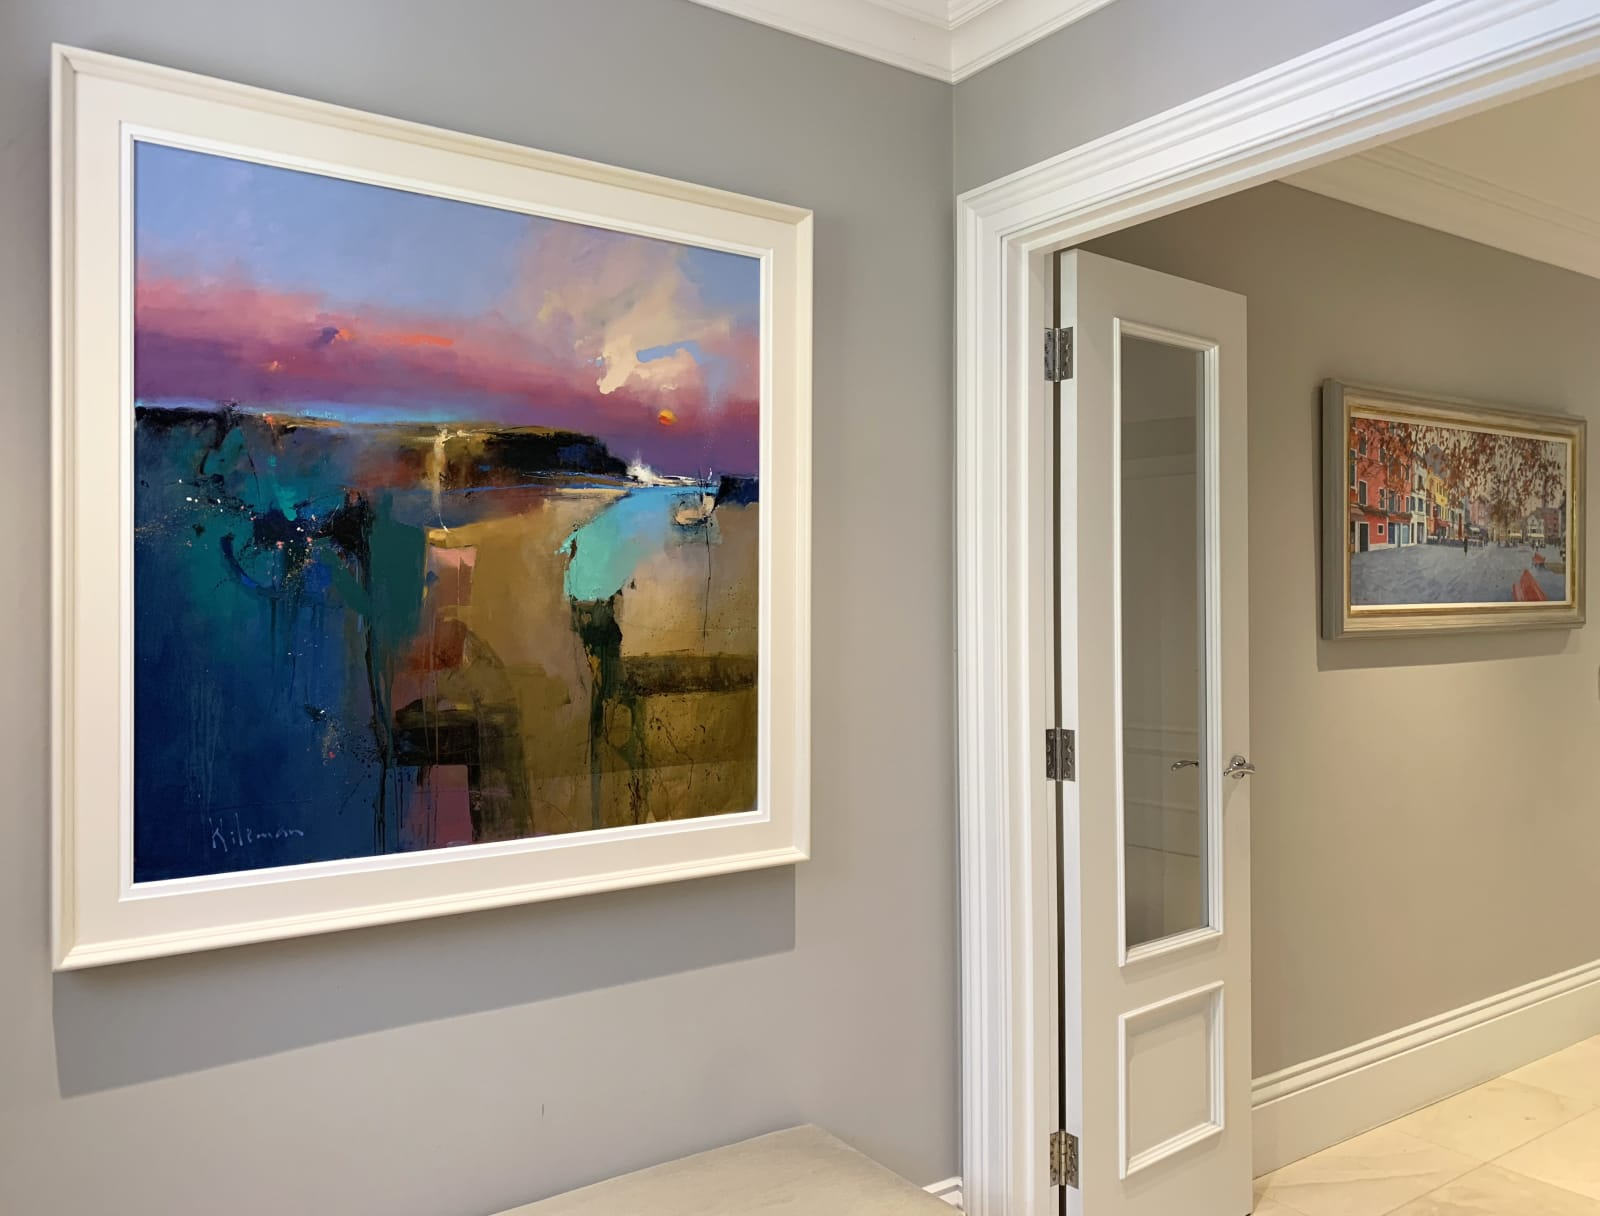 Statement pieces by Peter Wileman and Nicholas Verrall for a contemporary hallway